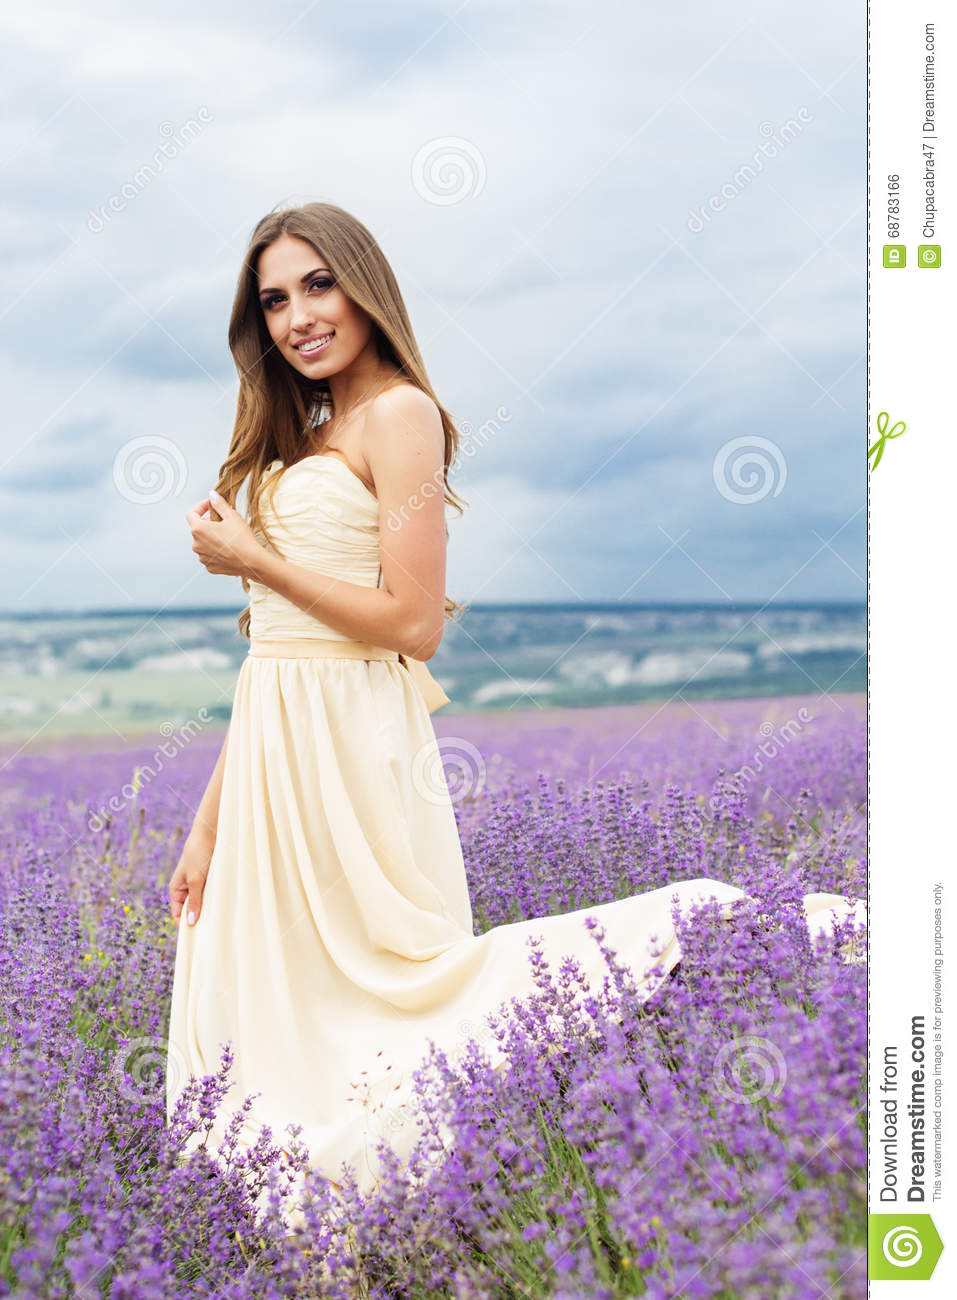 Bride Girl In White Dress At Lavender Field Stock Photo Image Of